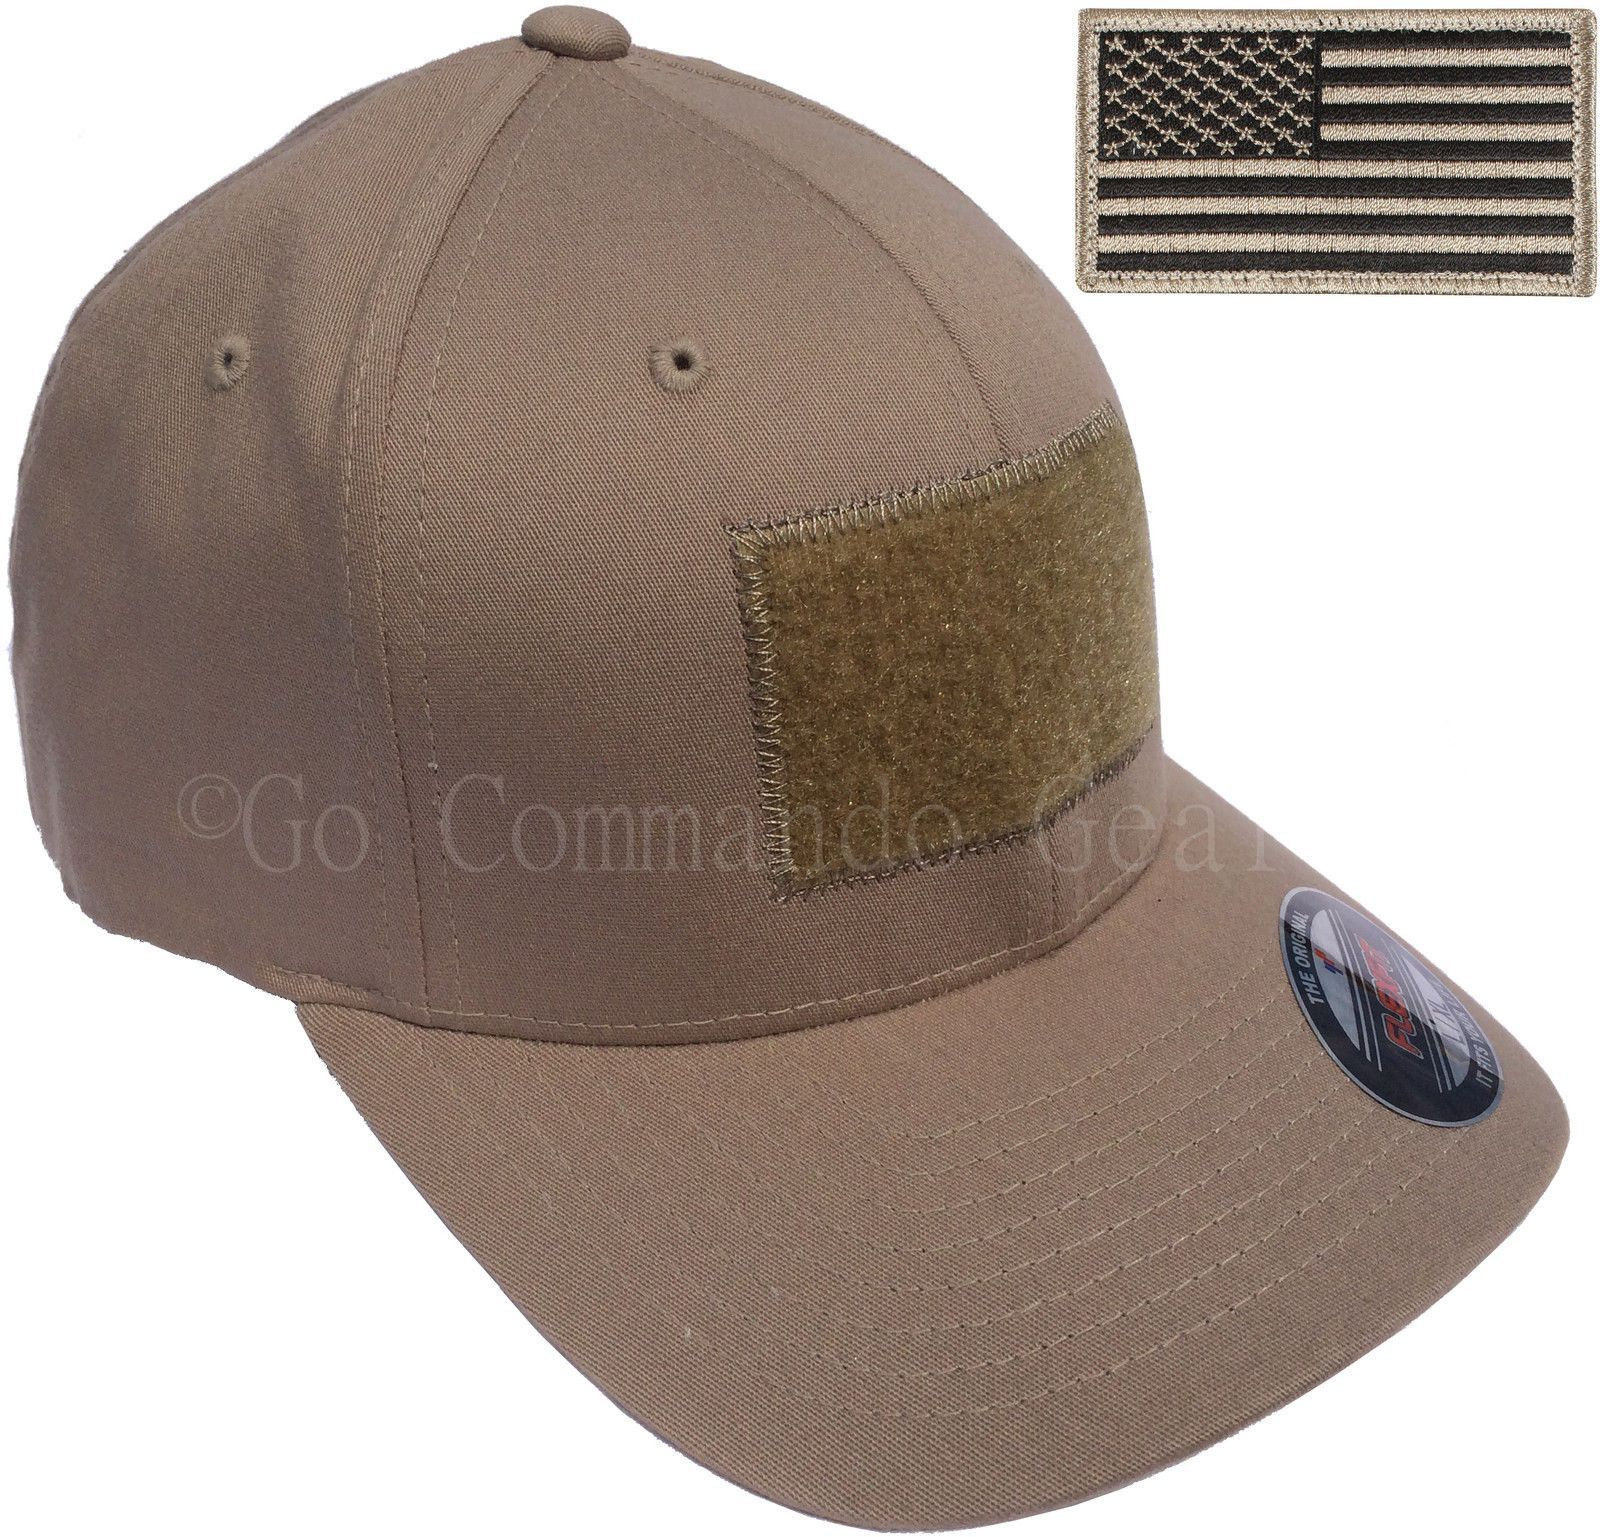 Men S Fitted 98 Cotton Flexfit Mid Profile Tactical Cap W Velcro Area And Patch Gorras